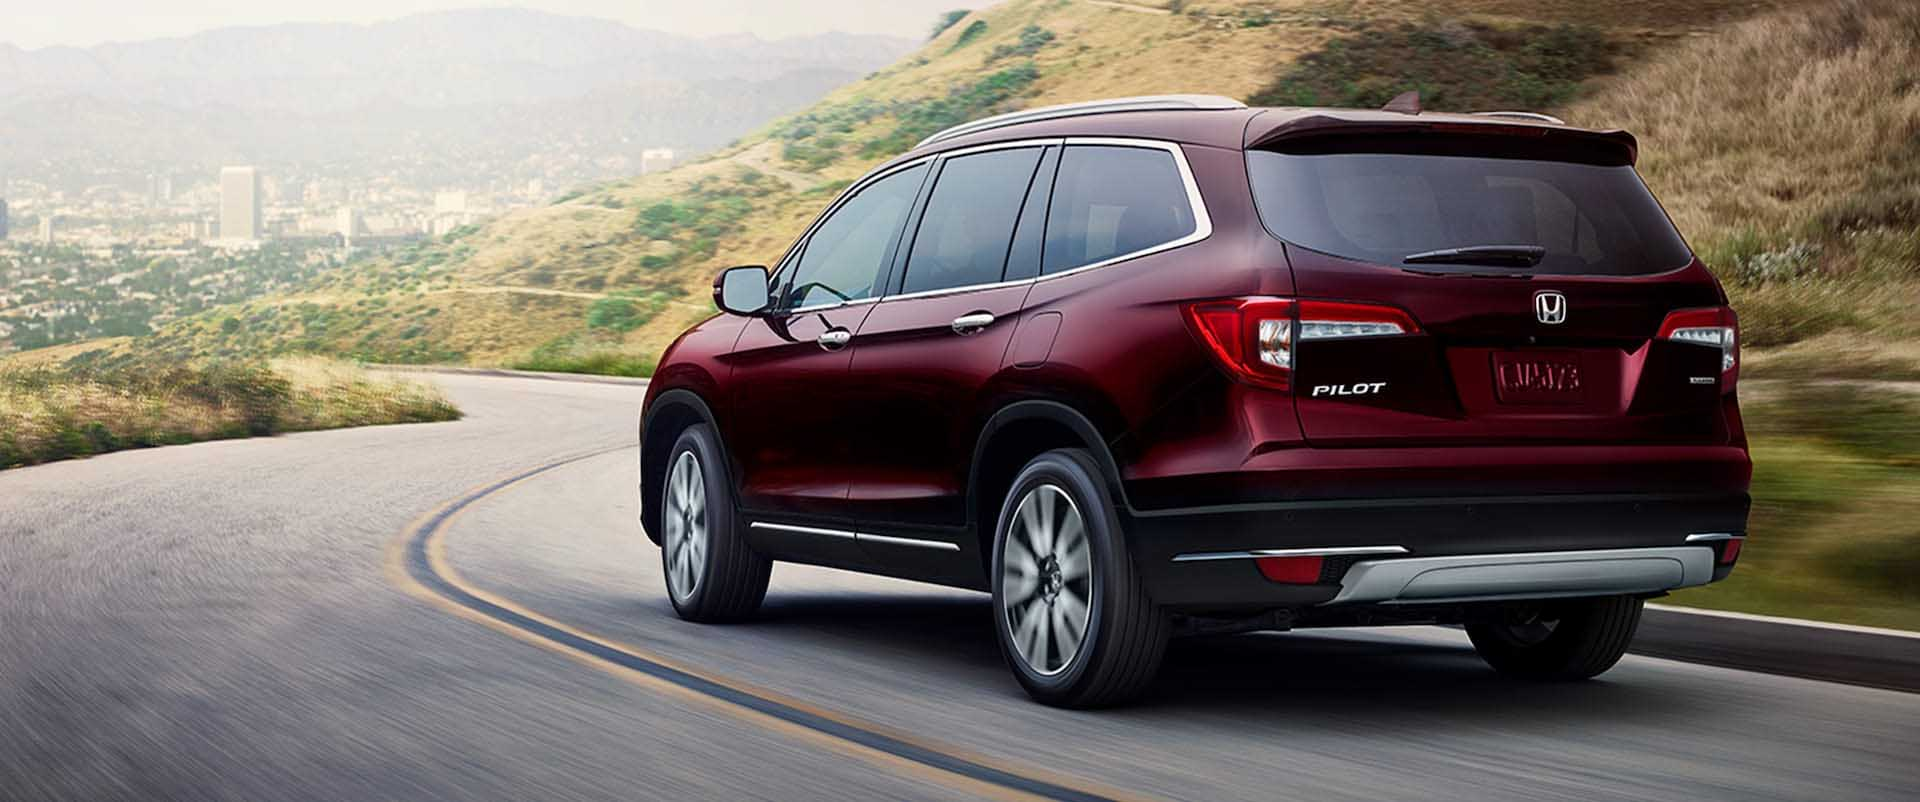 2021 Honda Pilot Mid-Size SUV For Sale In Midland, Texas